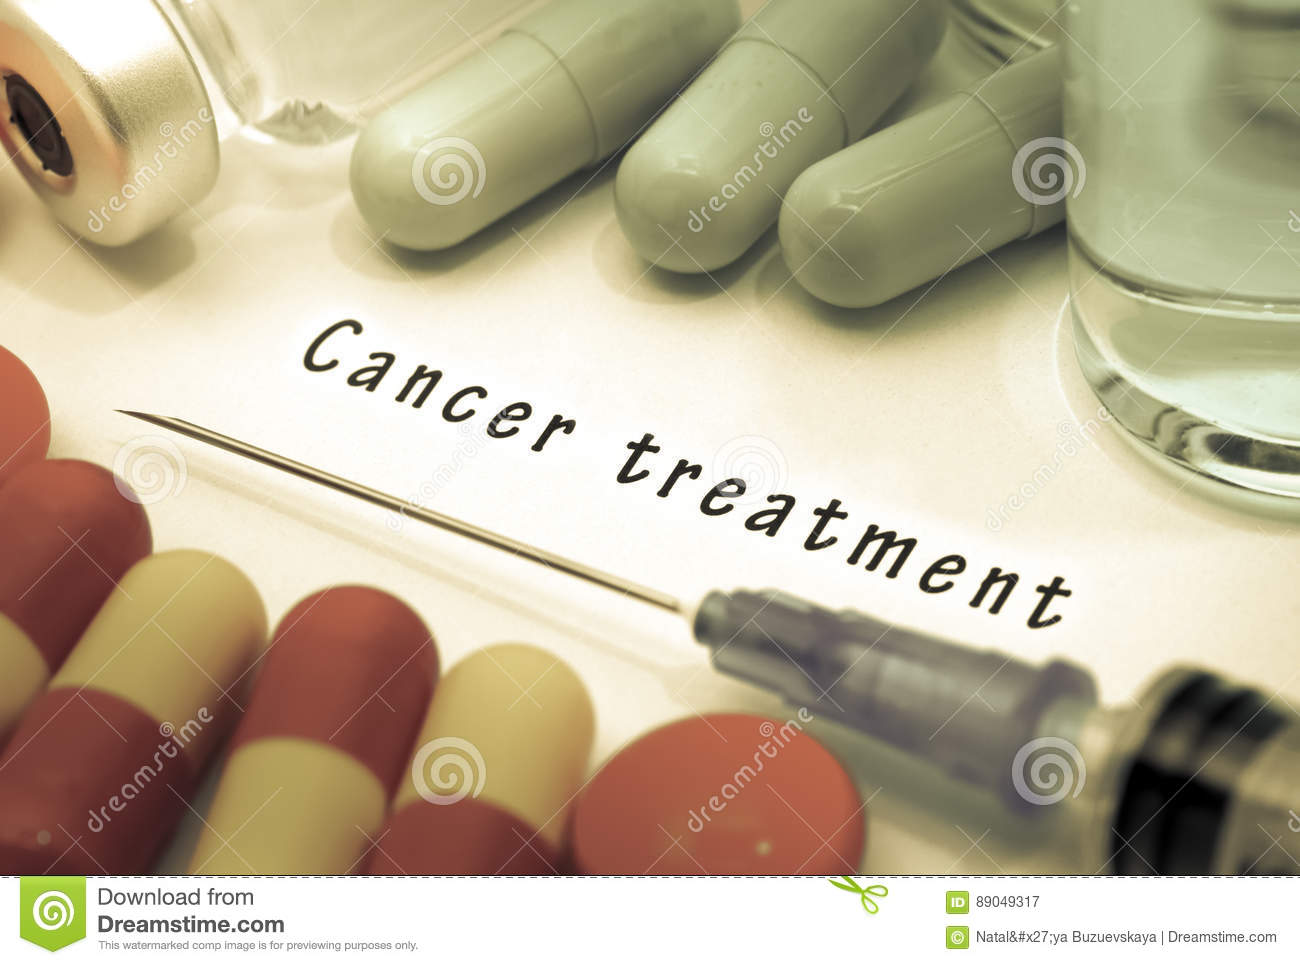 the detection and treatment of cancer through apitherapy He is currently director of biomedical research and  secretary of the egyptian society of apitherapy,  (diagnostic technology), iga detection kit and.